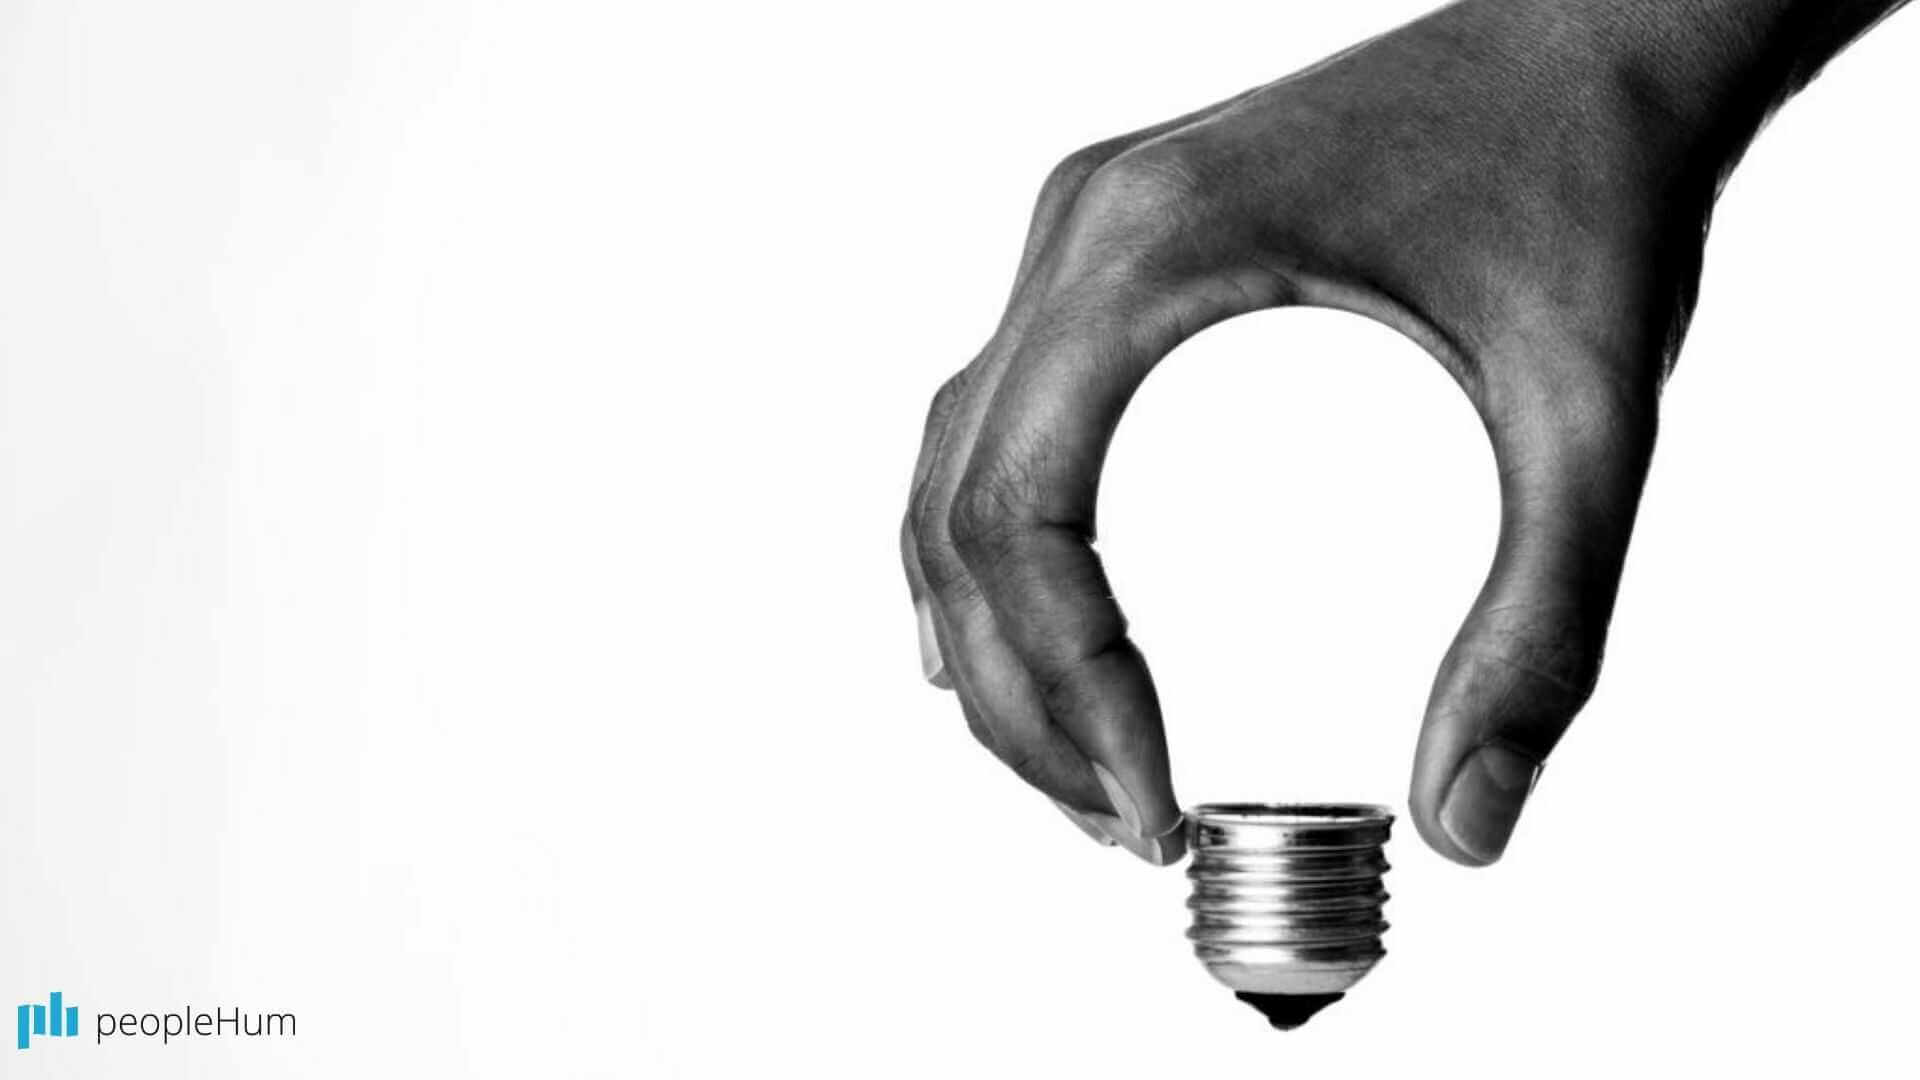 The rationality of the leader between creativity and innovation